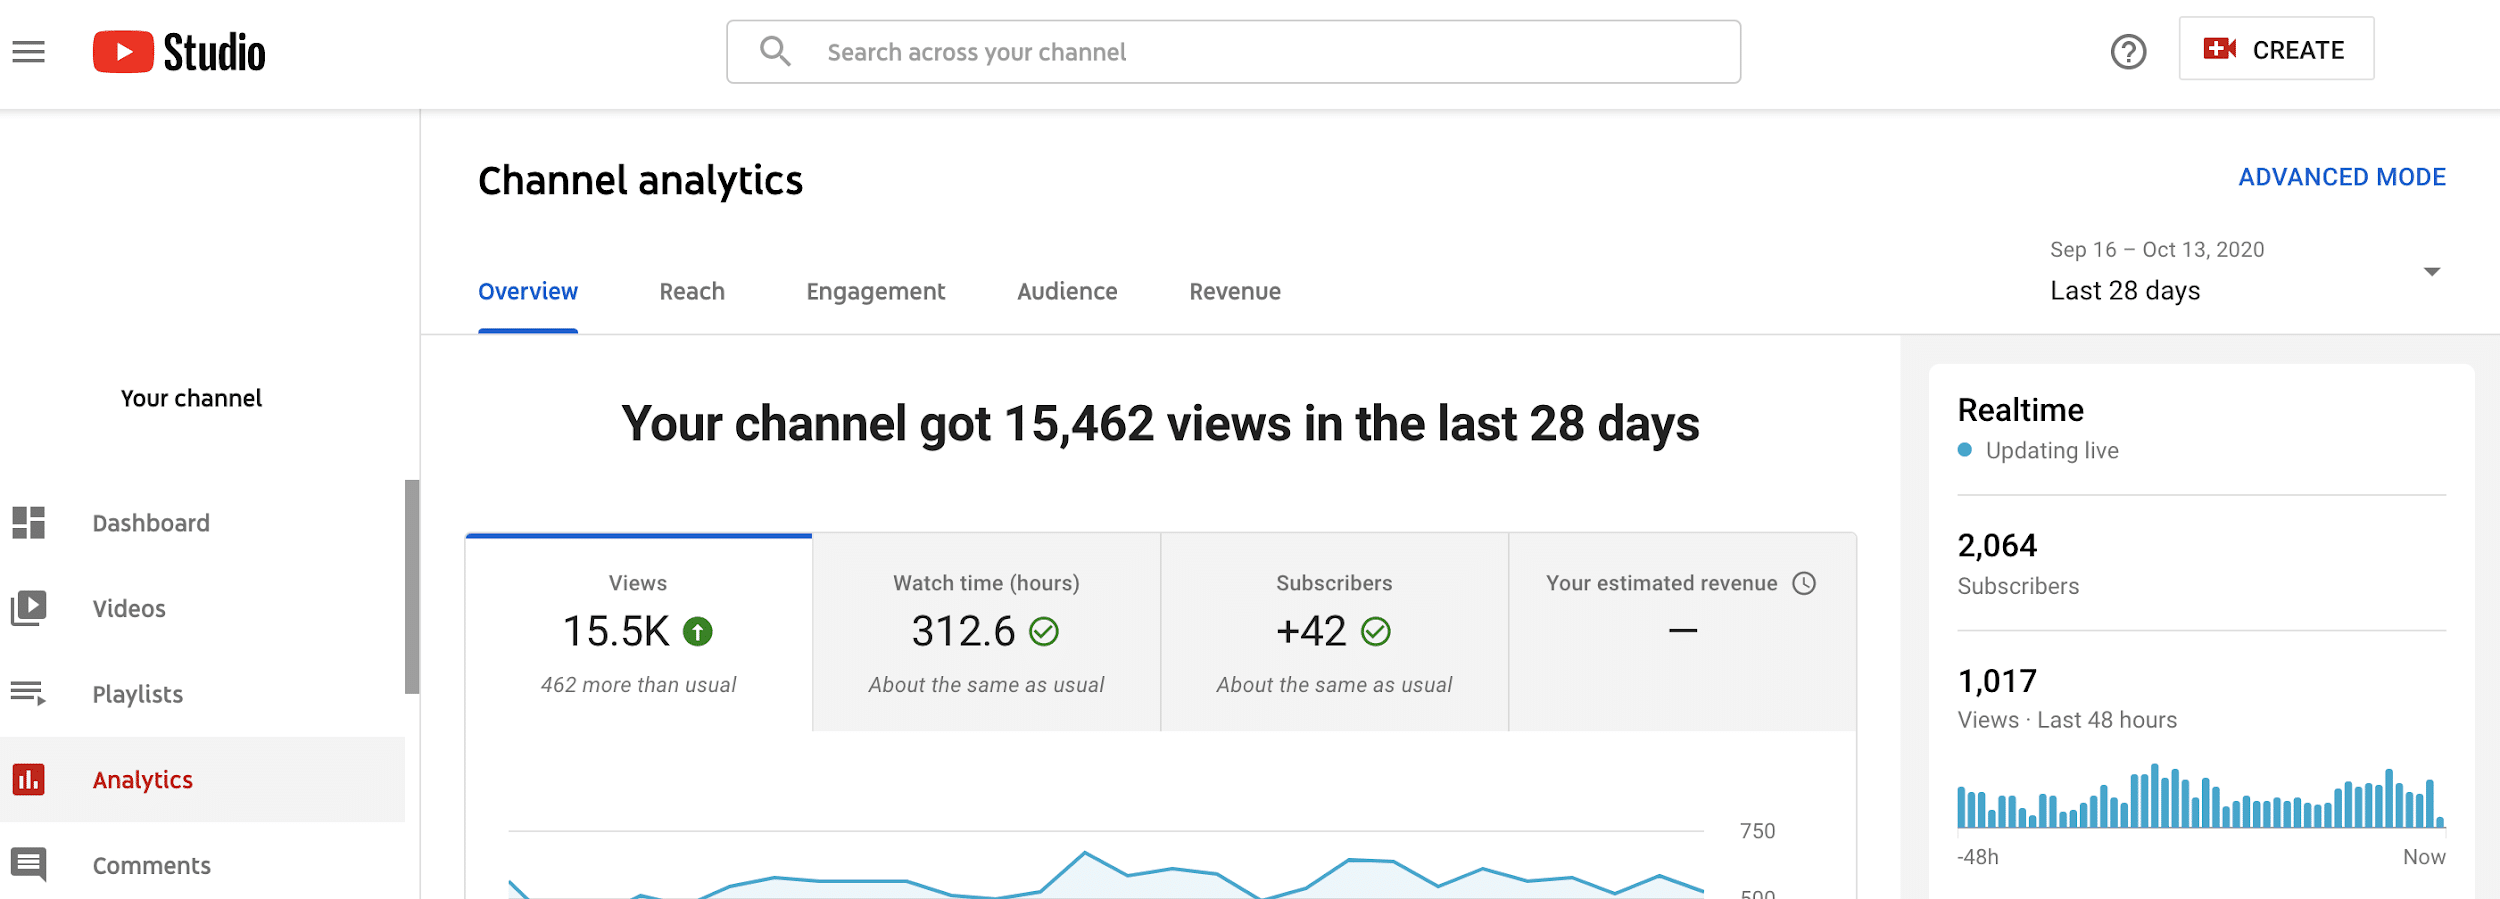 youtube analytics channel overview page